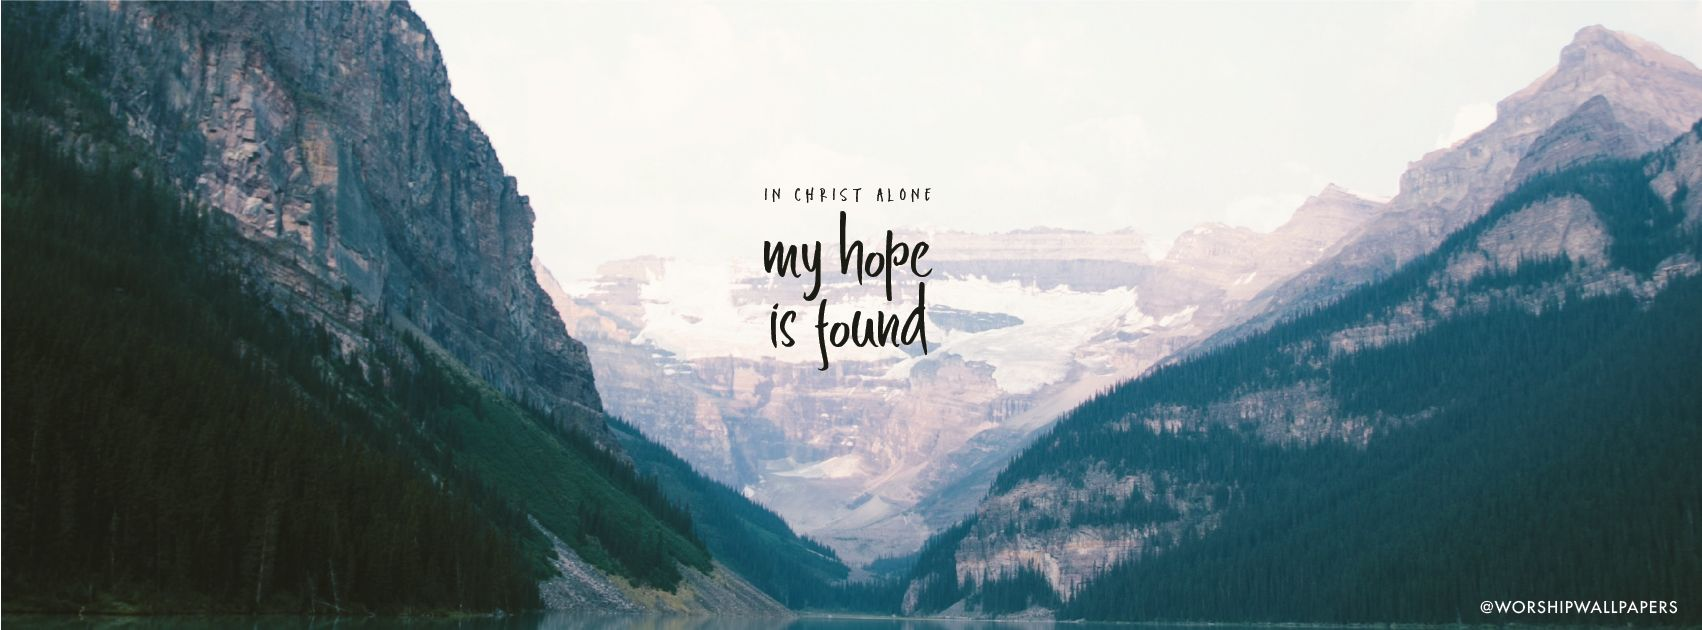 In Christ Alone // Owl City Facebook cover photos